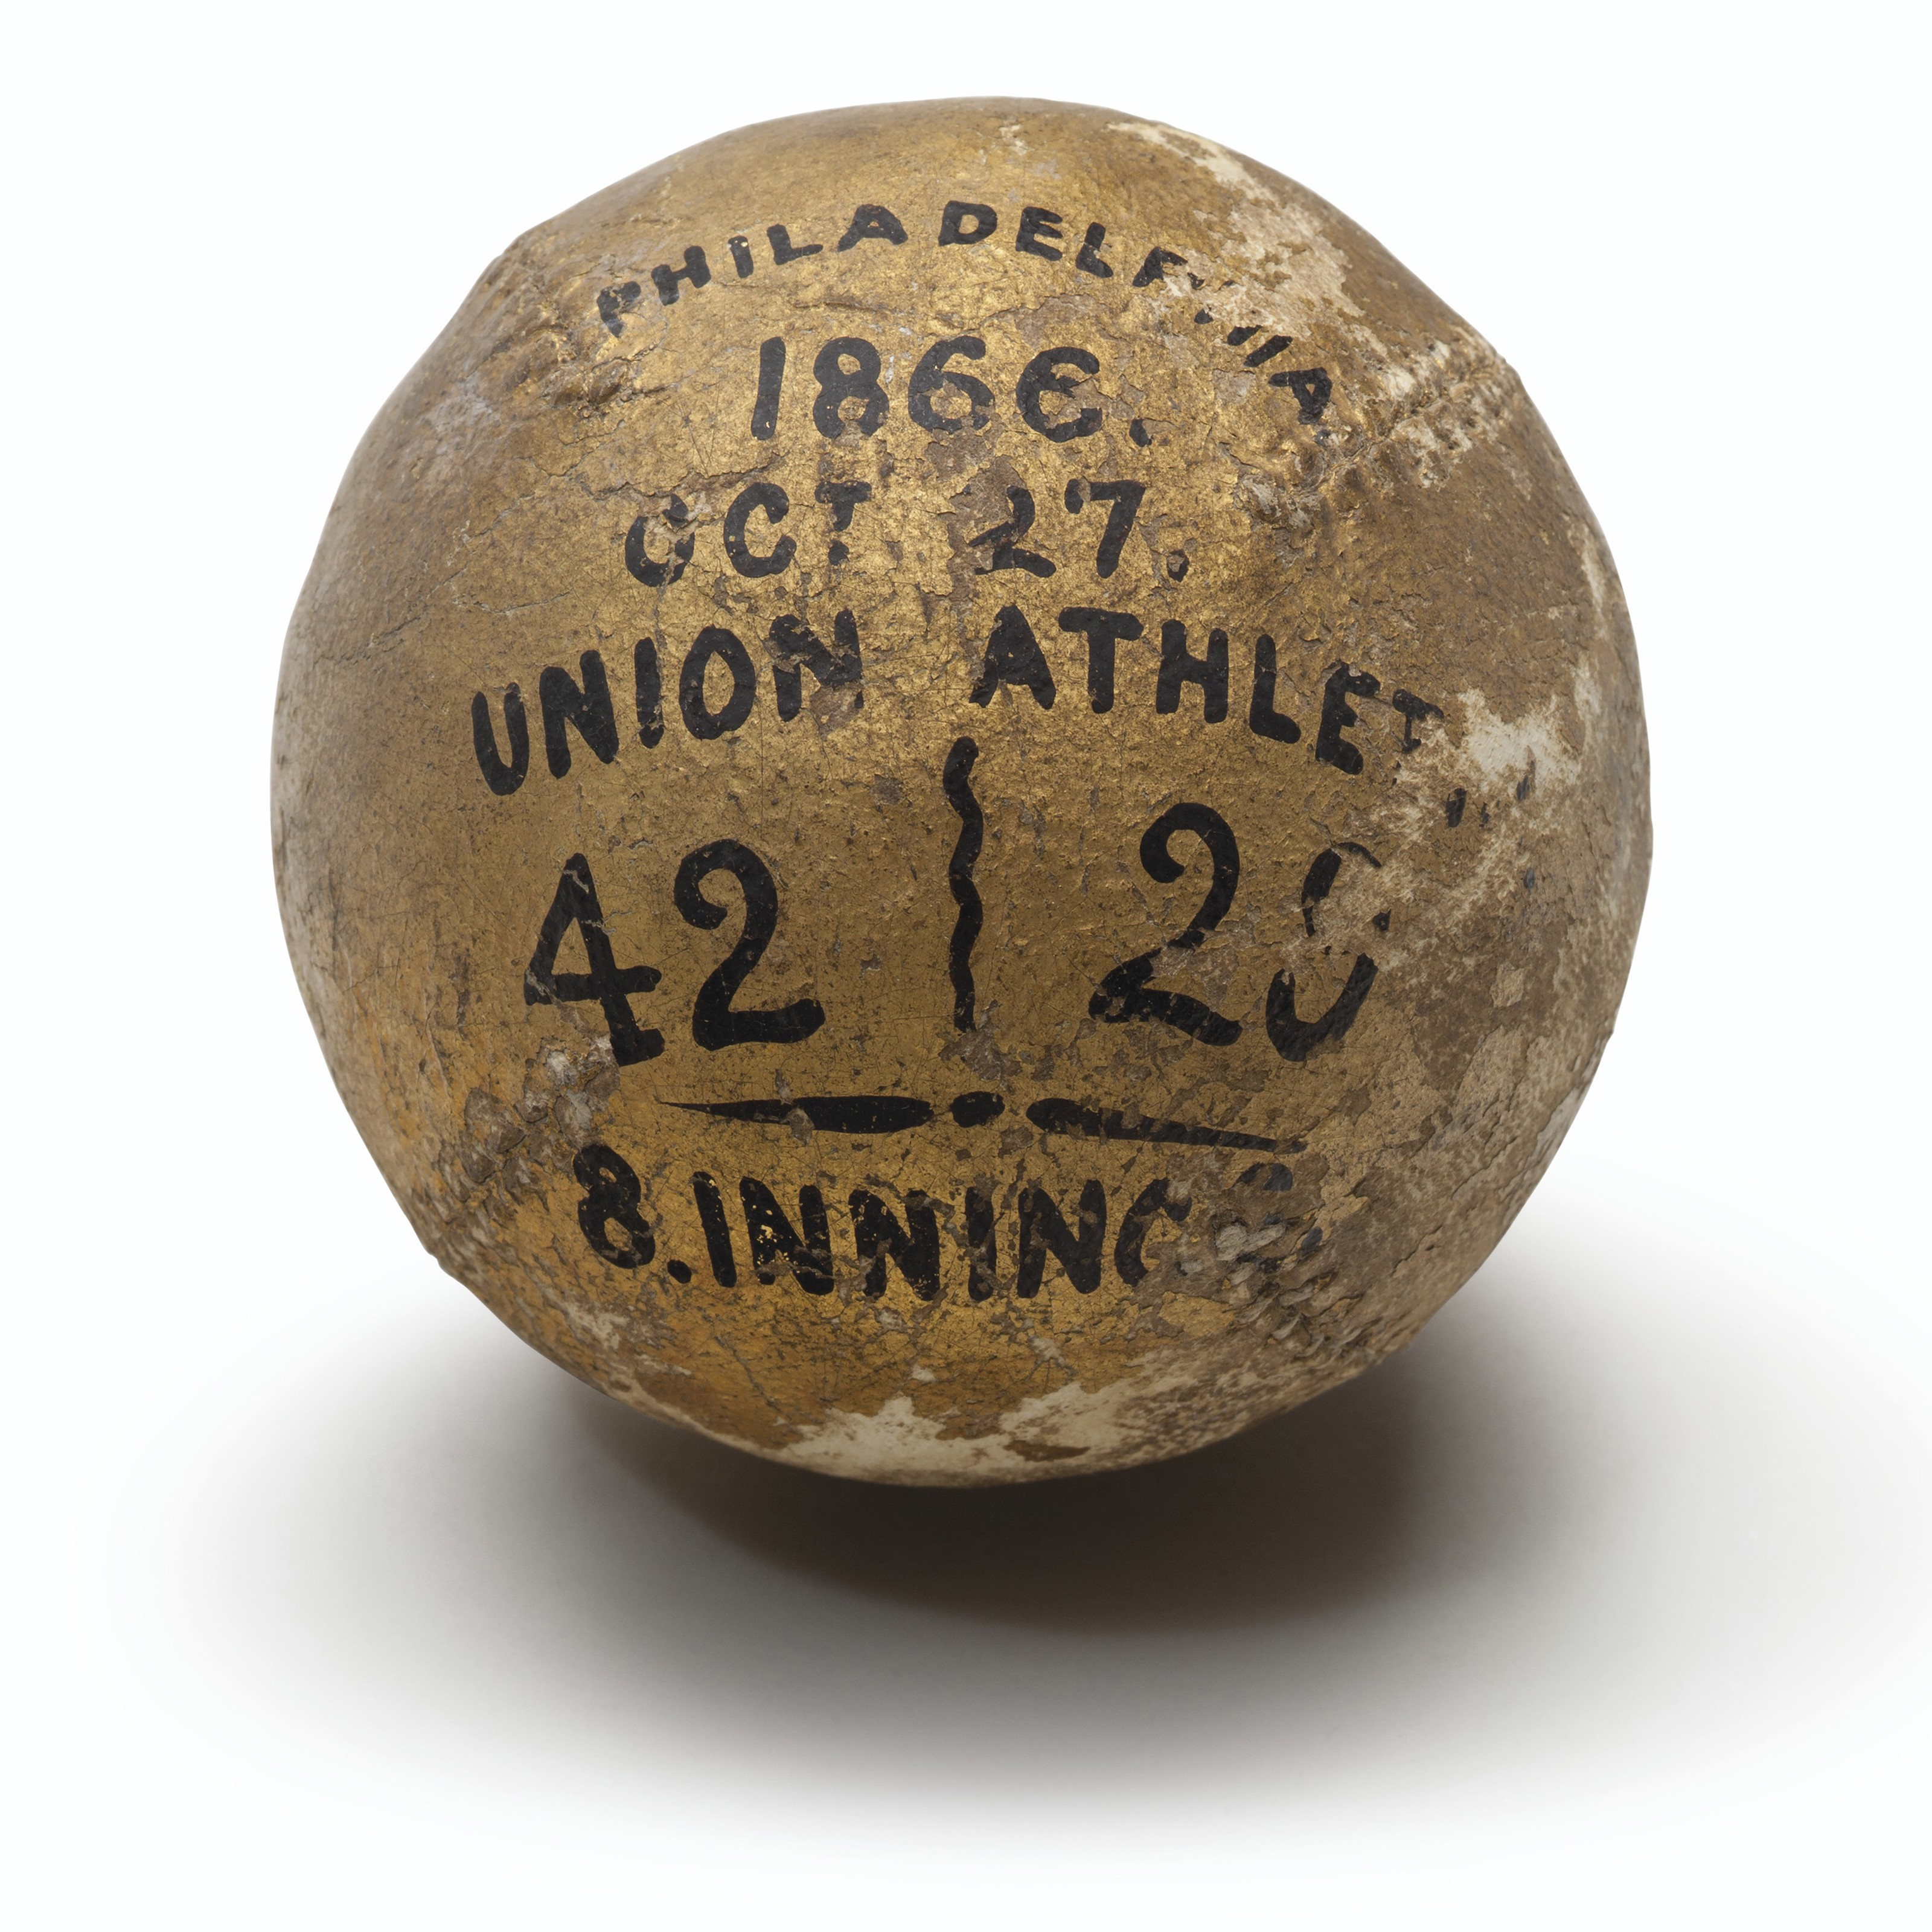 1866 Unions vs. Athletics trophy baseball. Estimate                    $10,000-15,000. This lot is offered in The Golden Age of Baseball, 29 March to 6 April 2018, Online